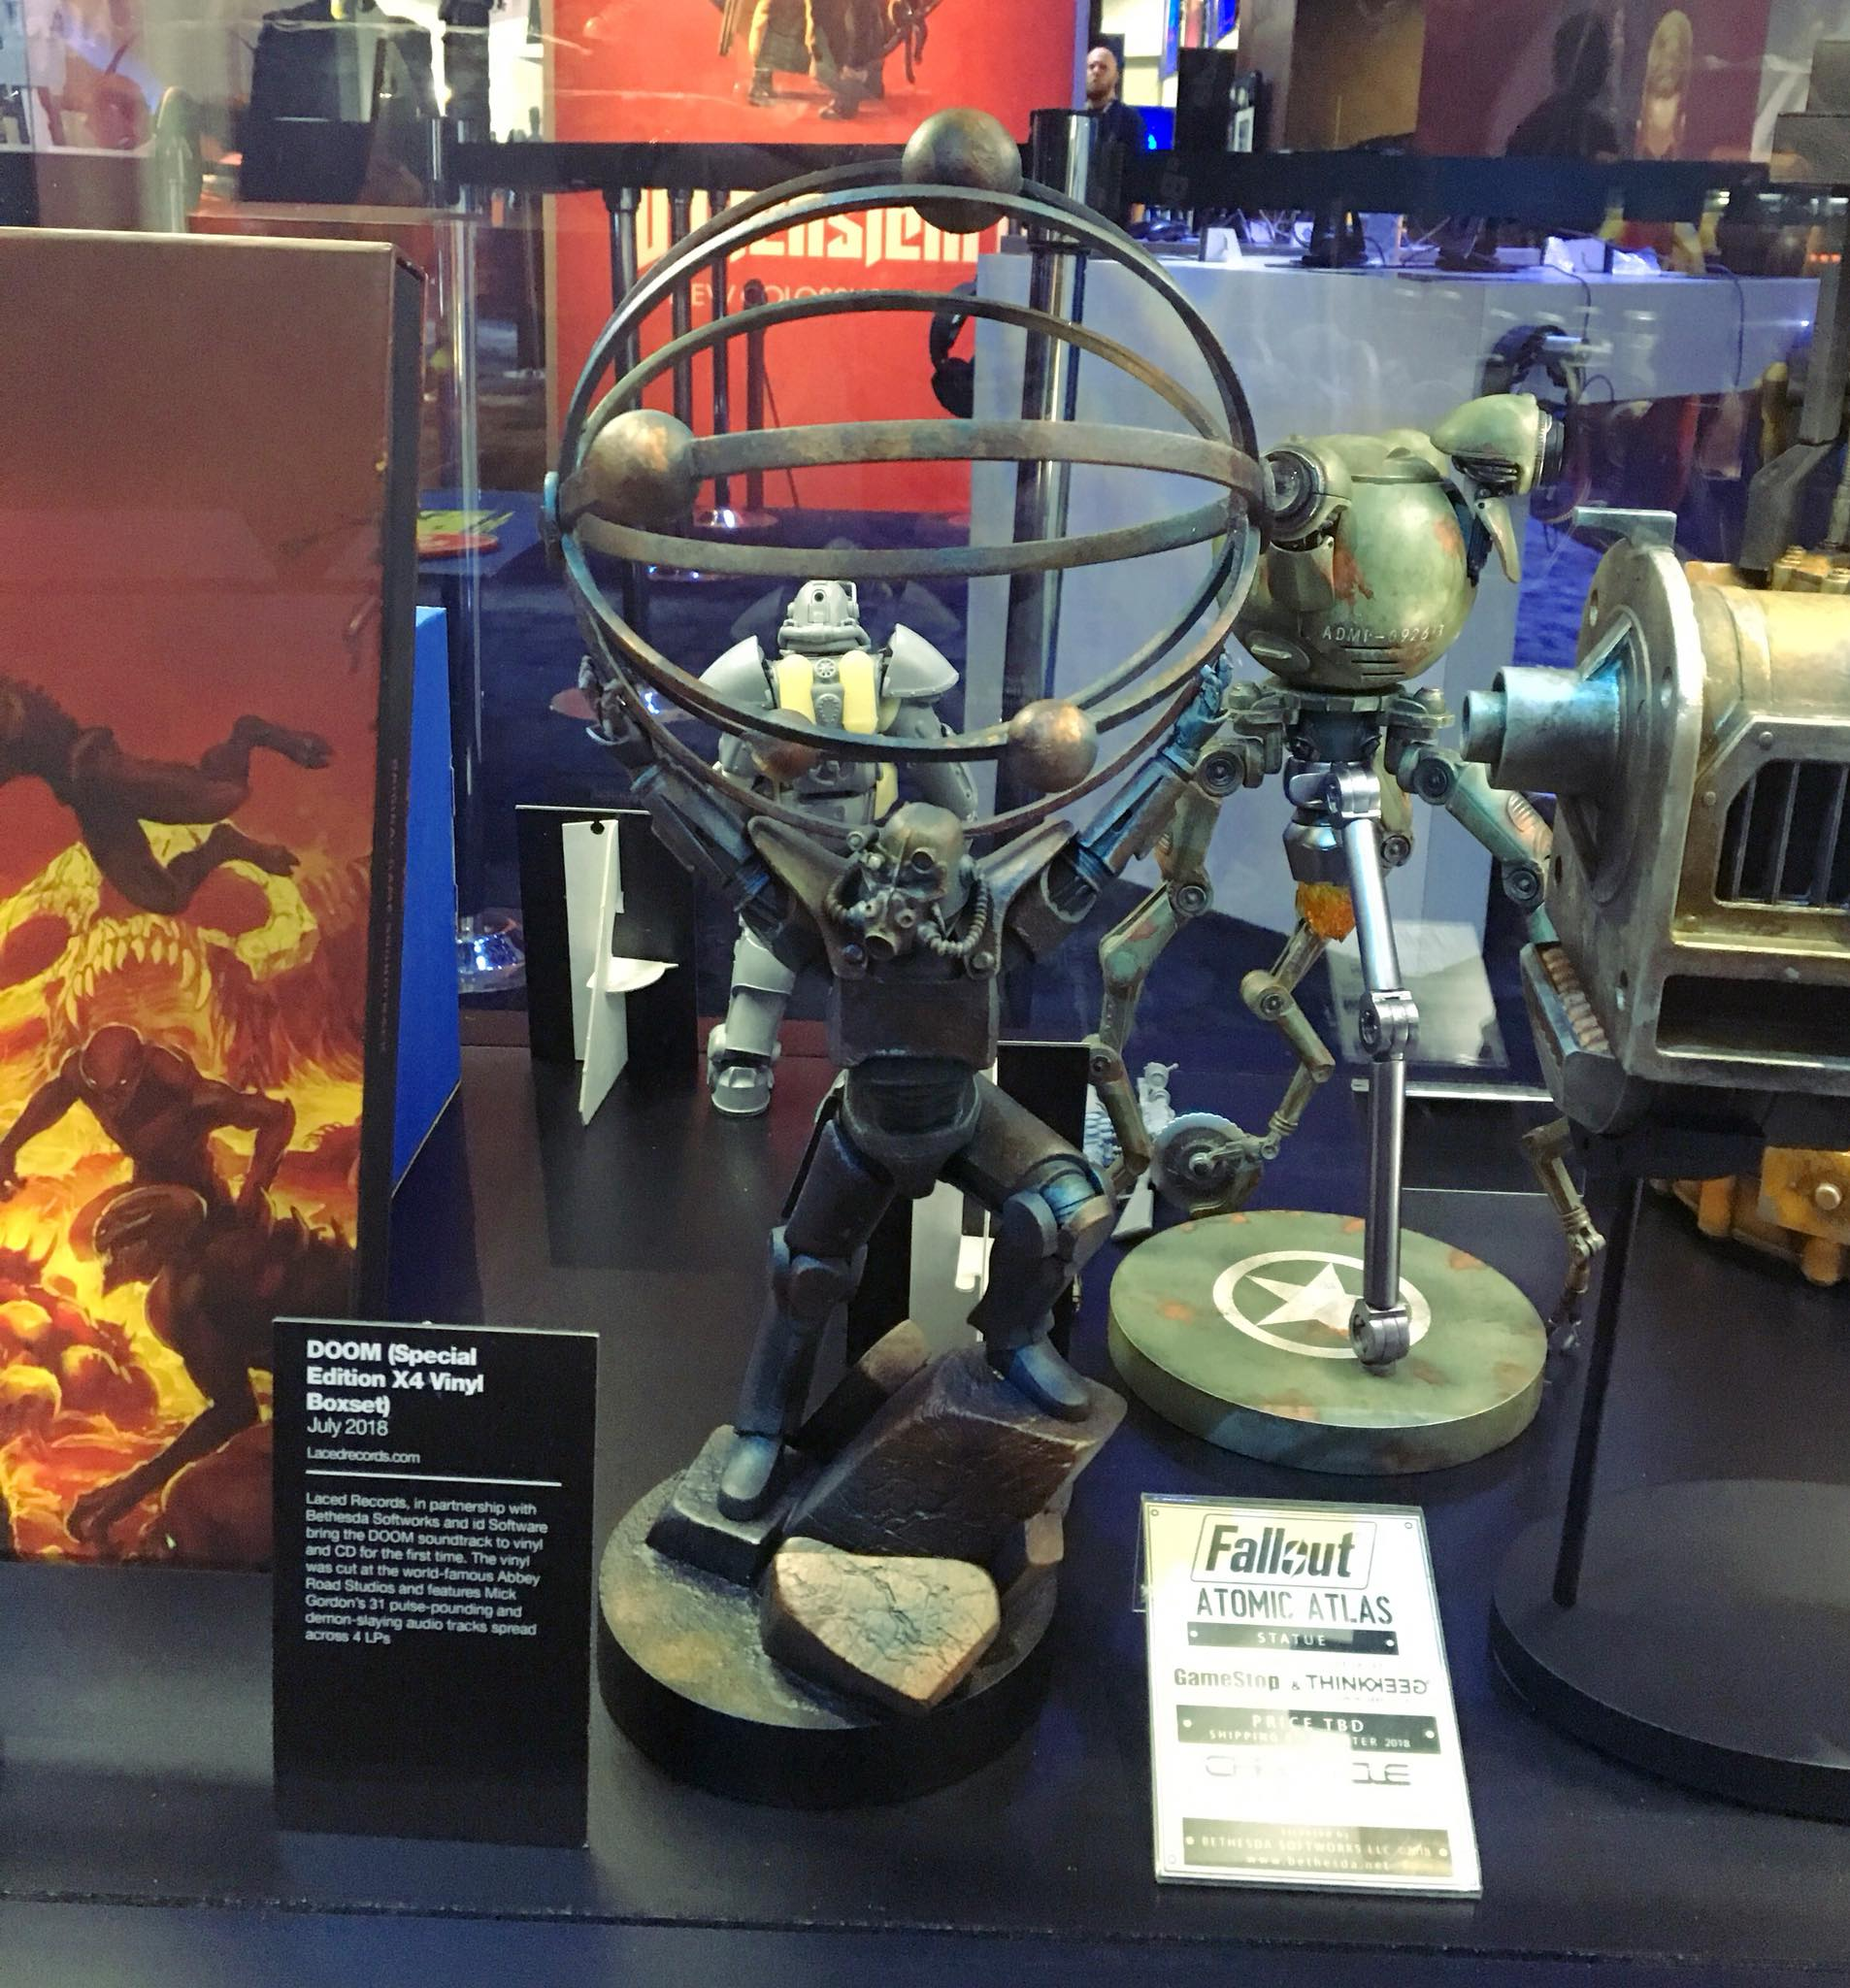 [Bild: Chronicle-E3-2018-Fallout-Display-006.jpg]